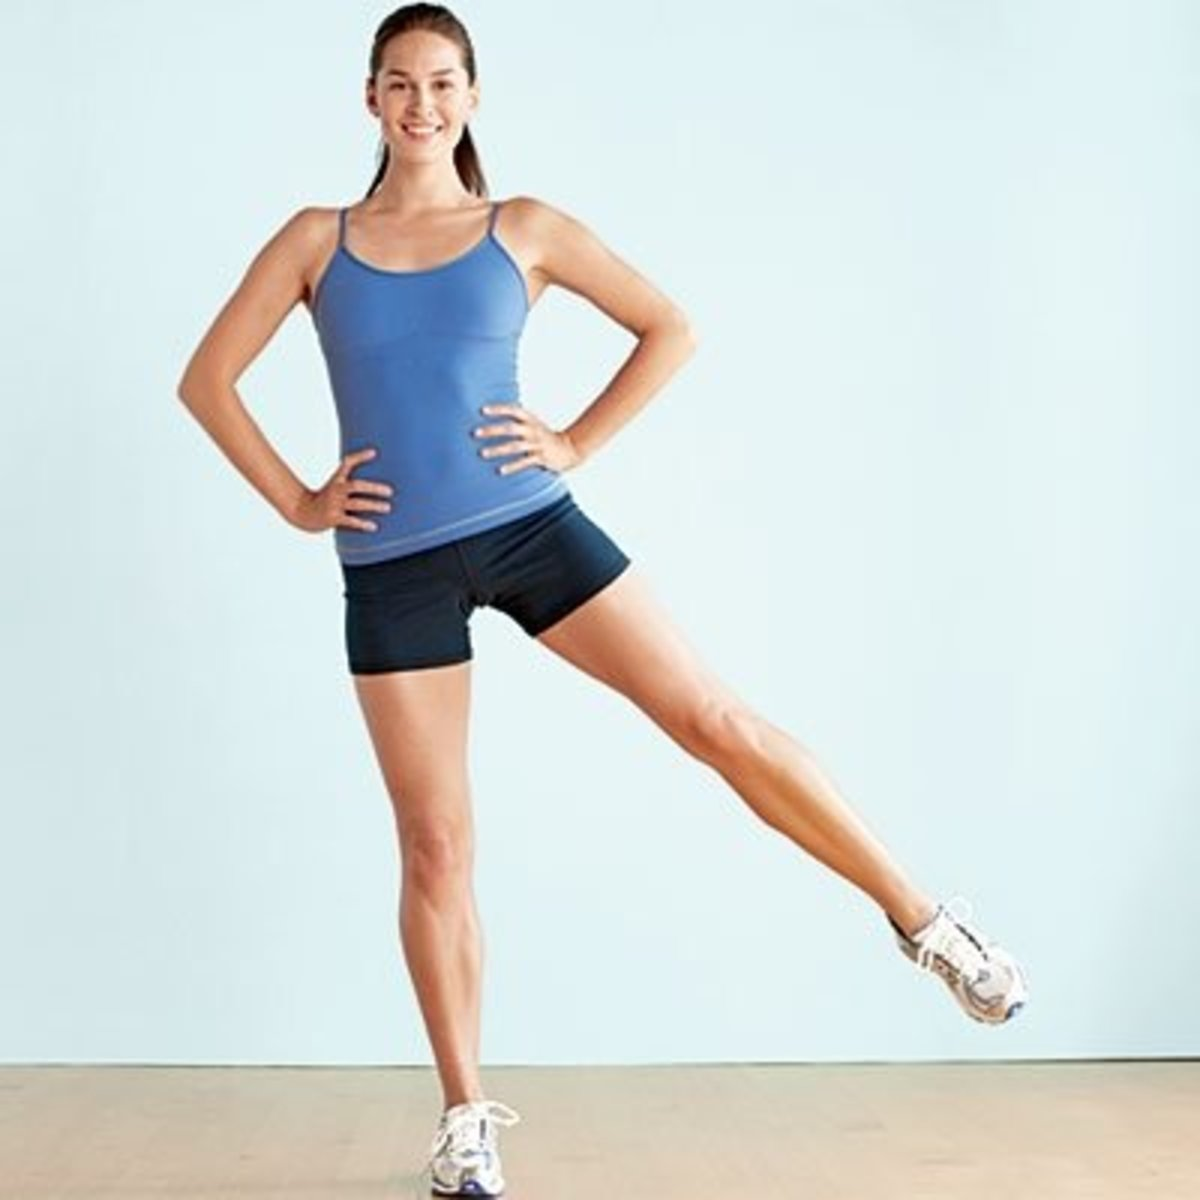 Leg Lift Challenge Exercises With Posters